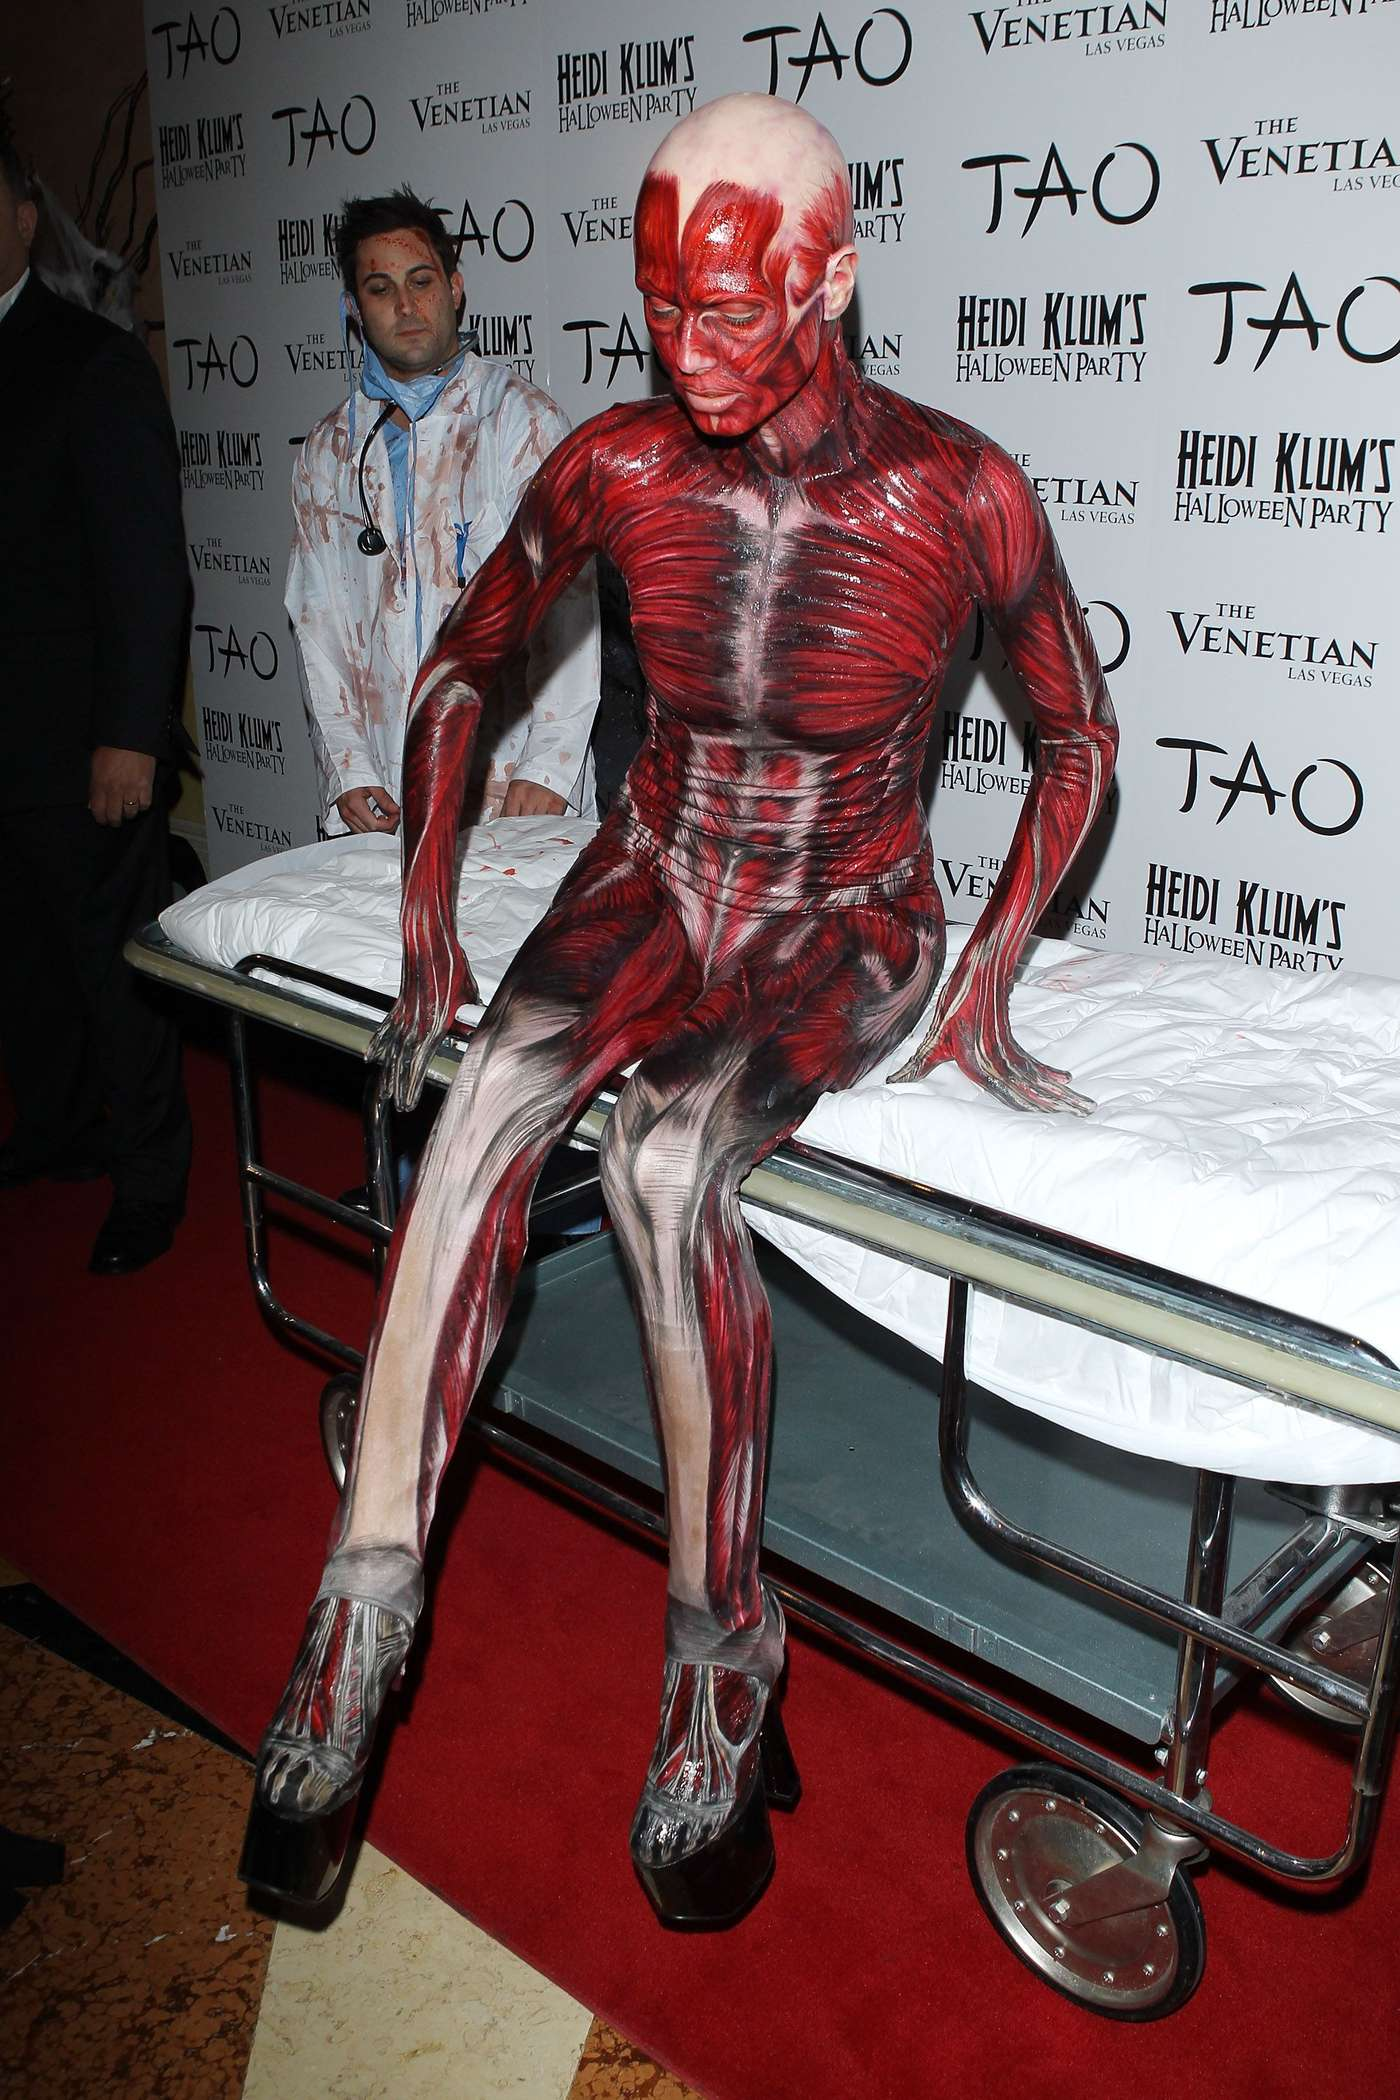 Heidi Klum - muscles and veins costume - Halloween Party in Las ...